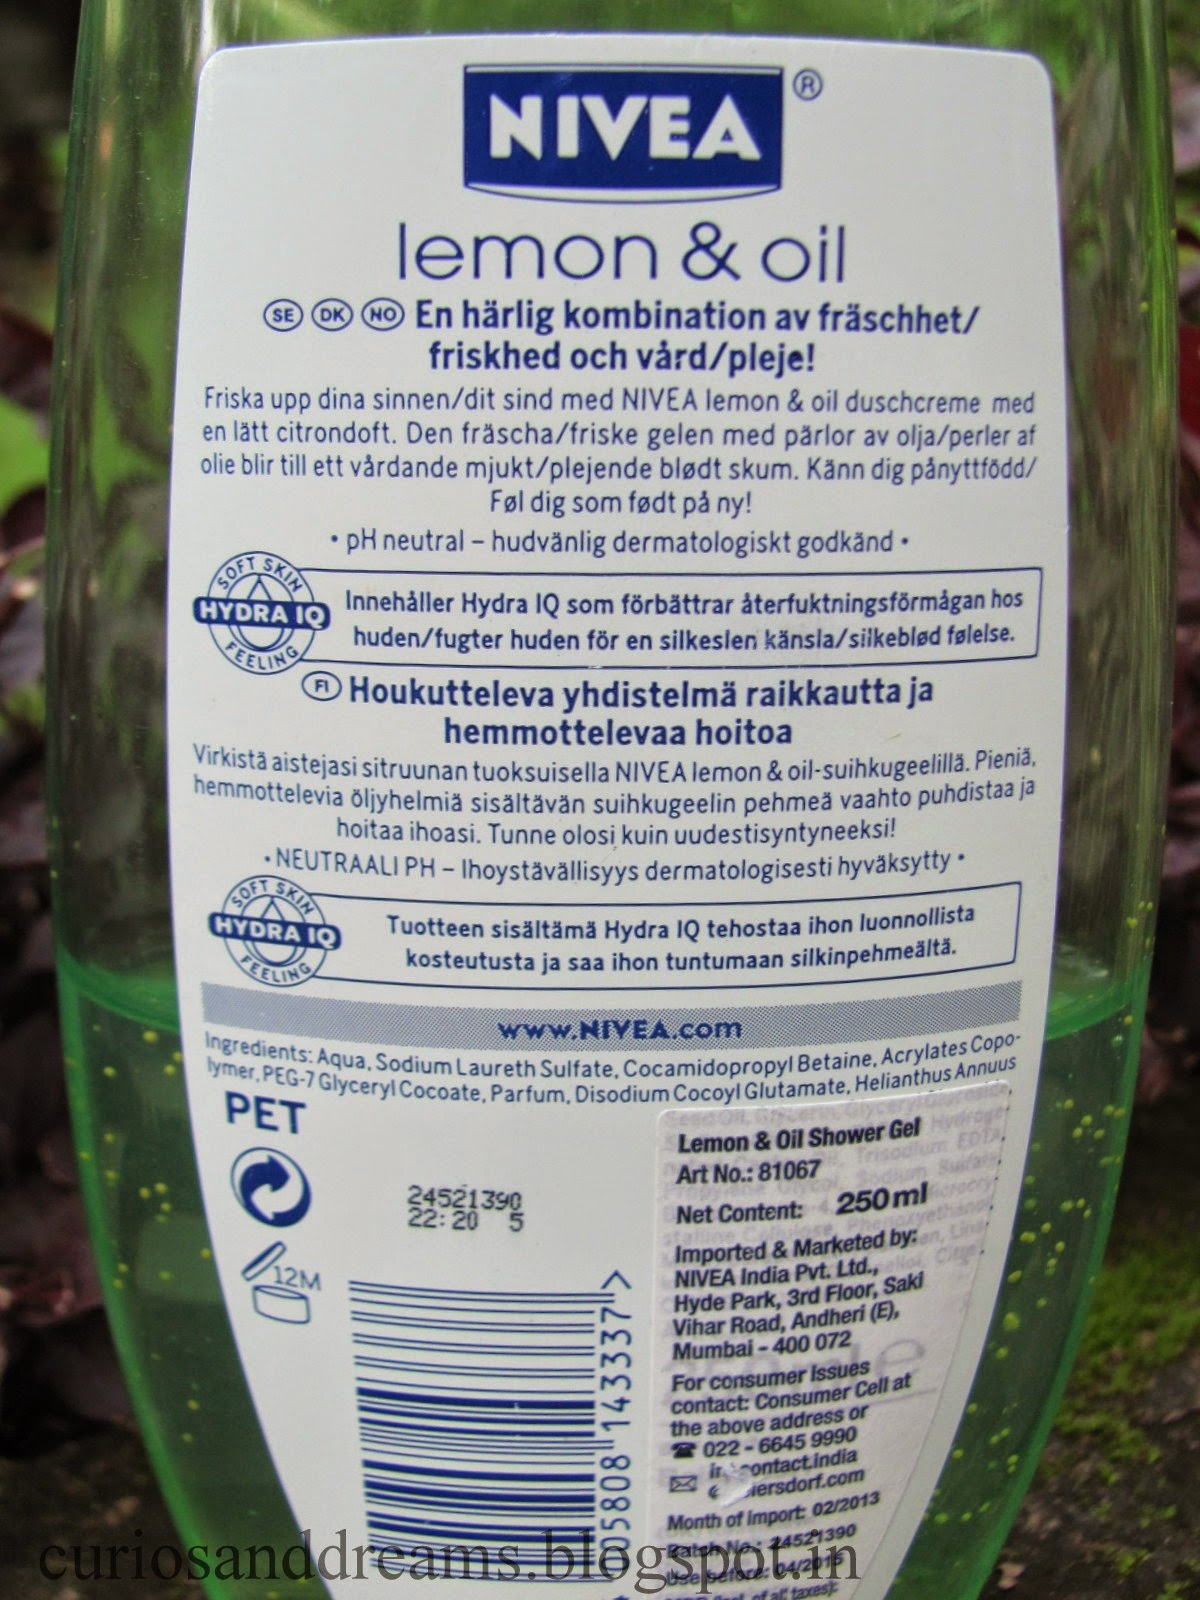 Nivea Lemon & Oil Shower Gel Review